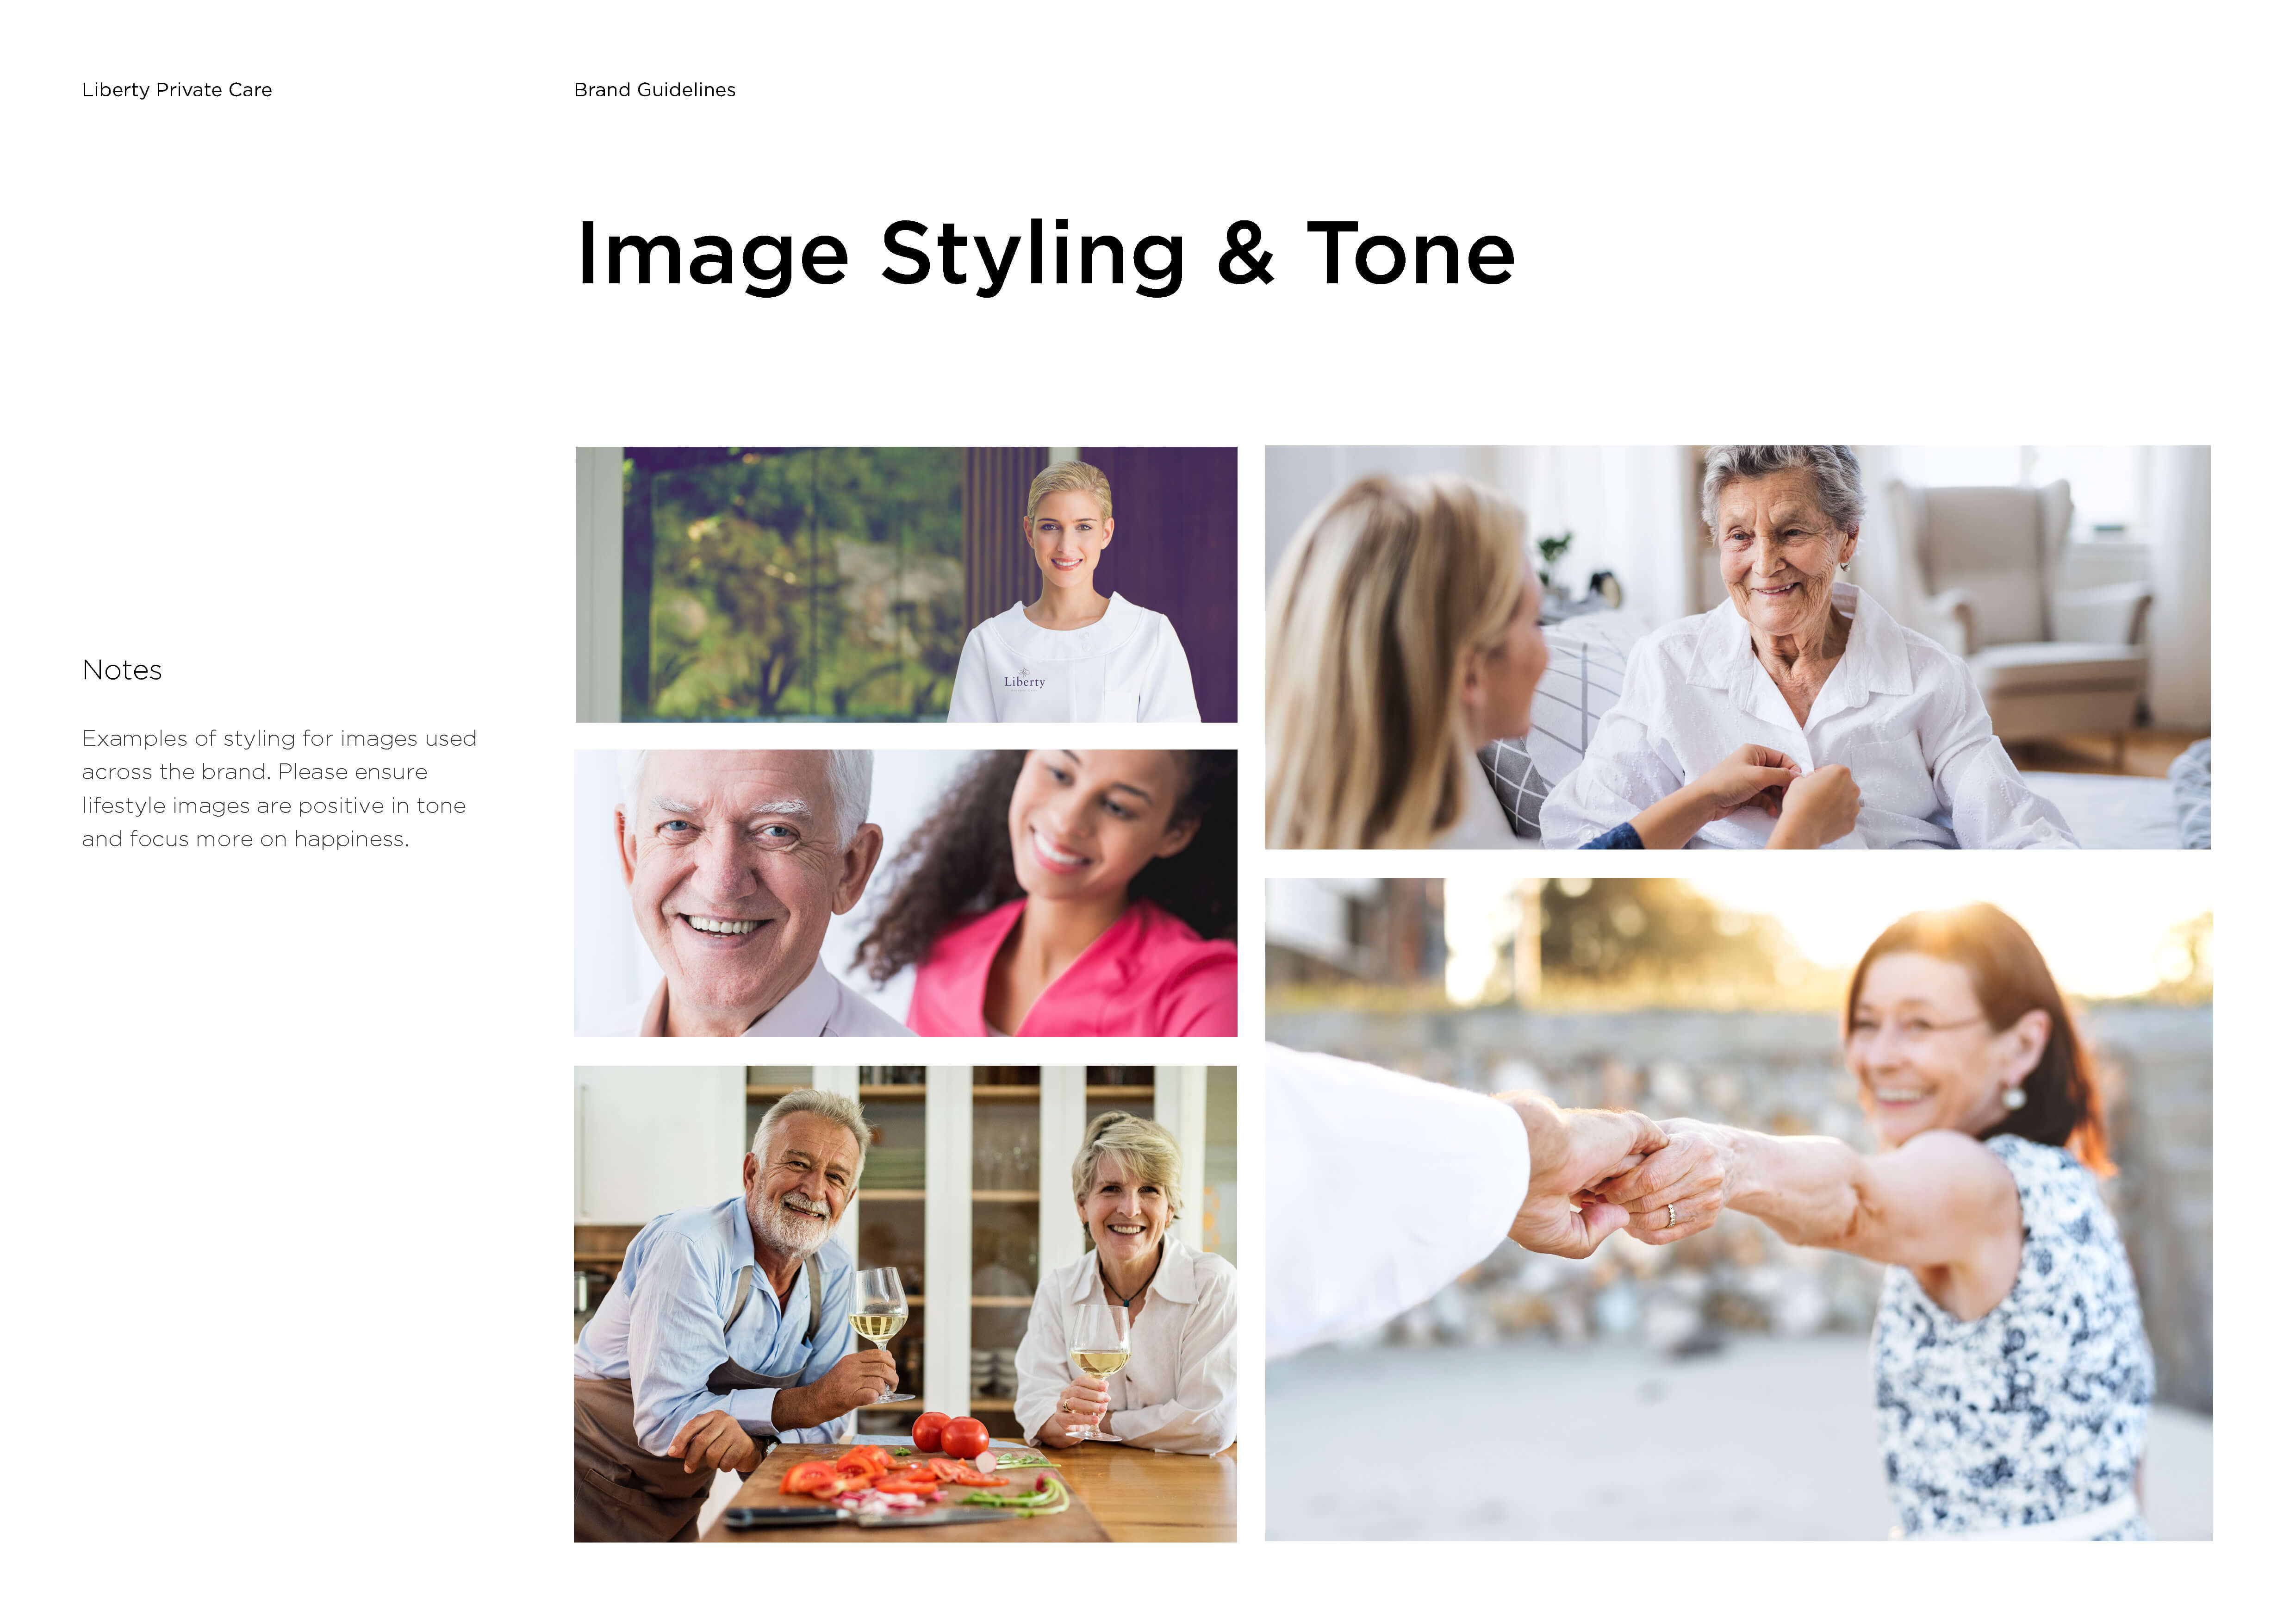 LPC brand guidelines tone of image